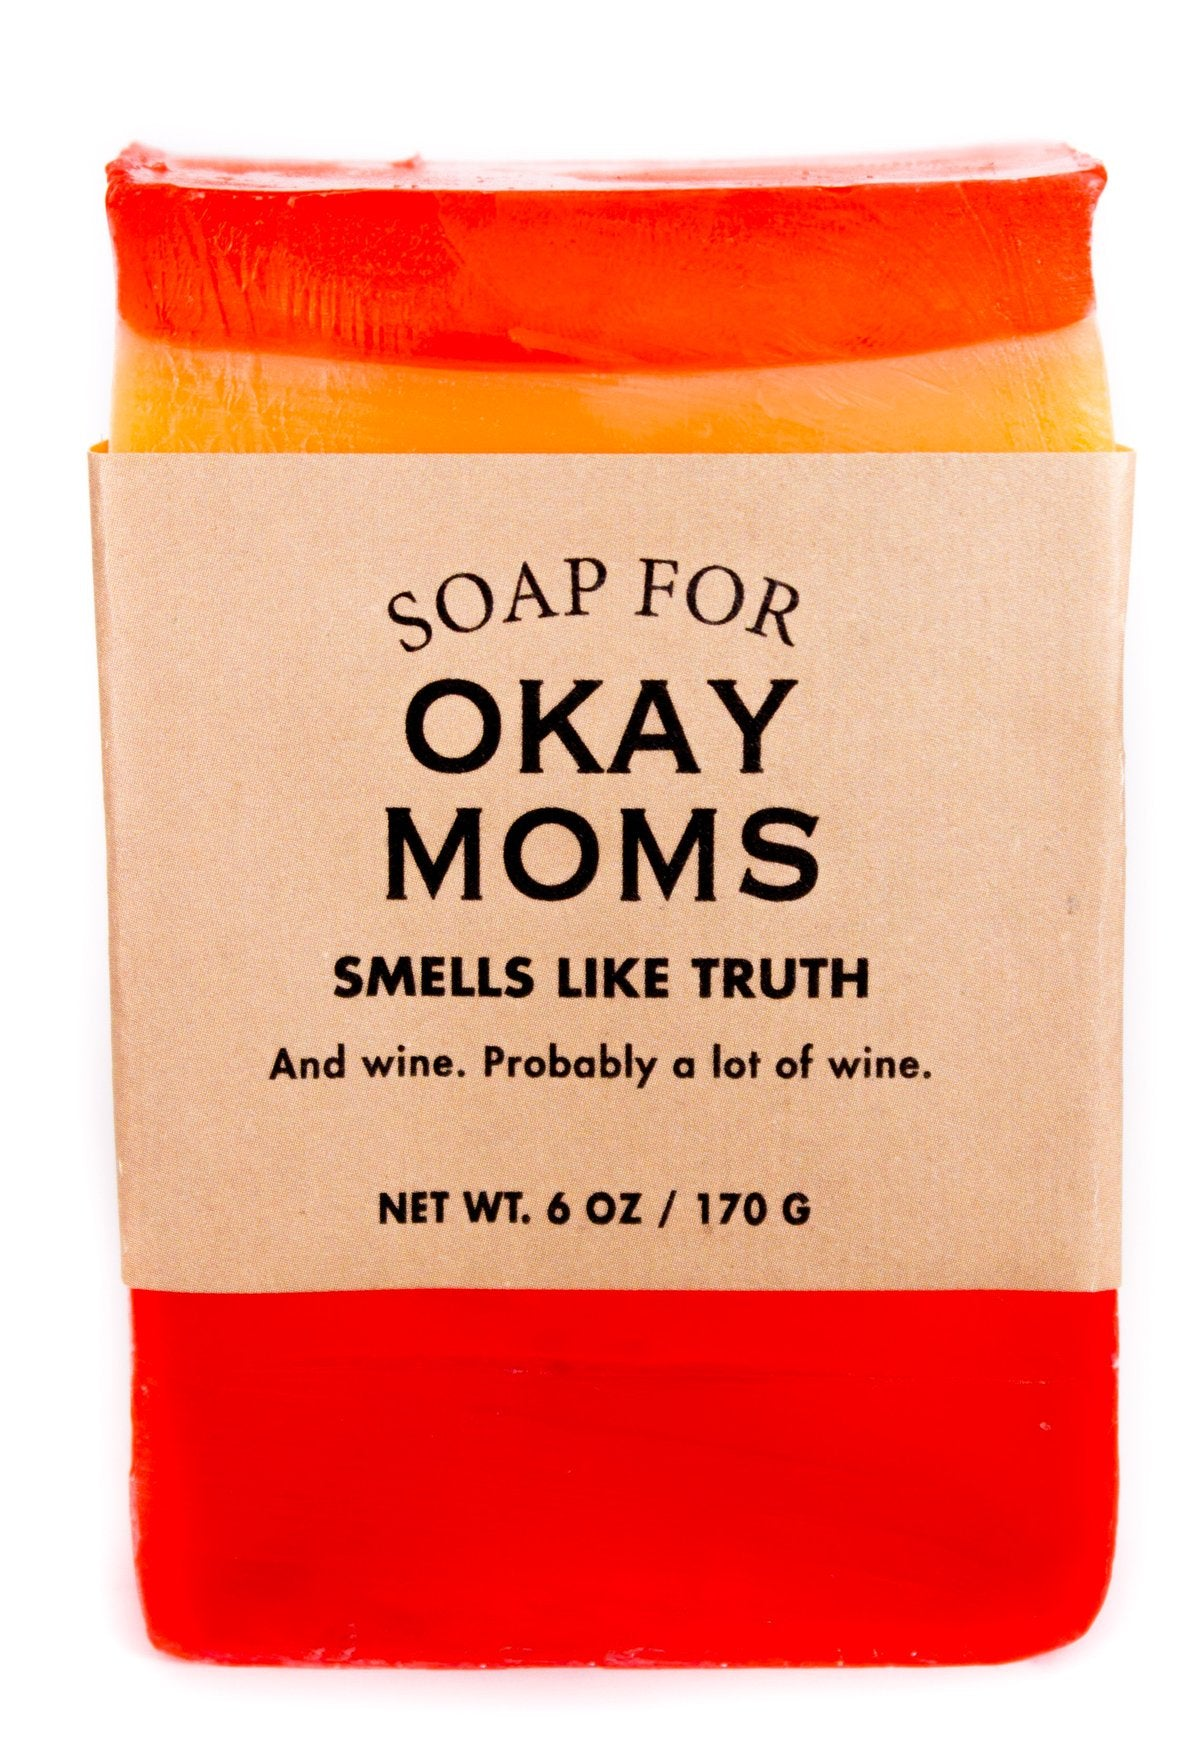 Soap for Okay Moms - Heart of the Home PA